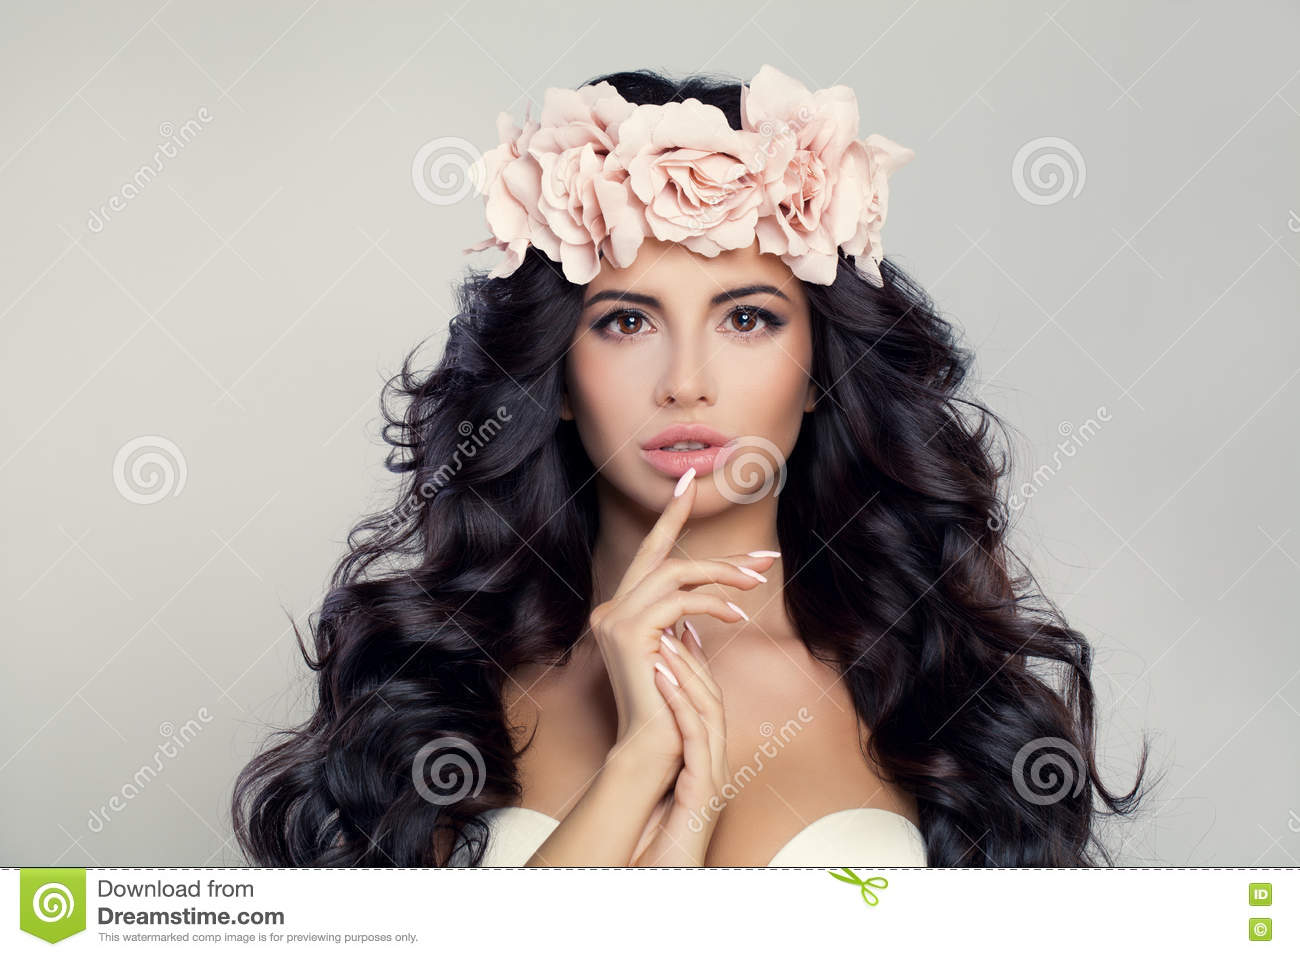 Glamorous Brunette Woman Model With Long Curly Hair Stock